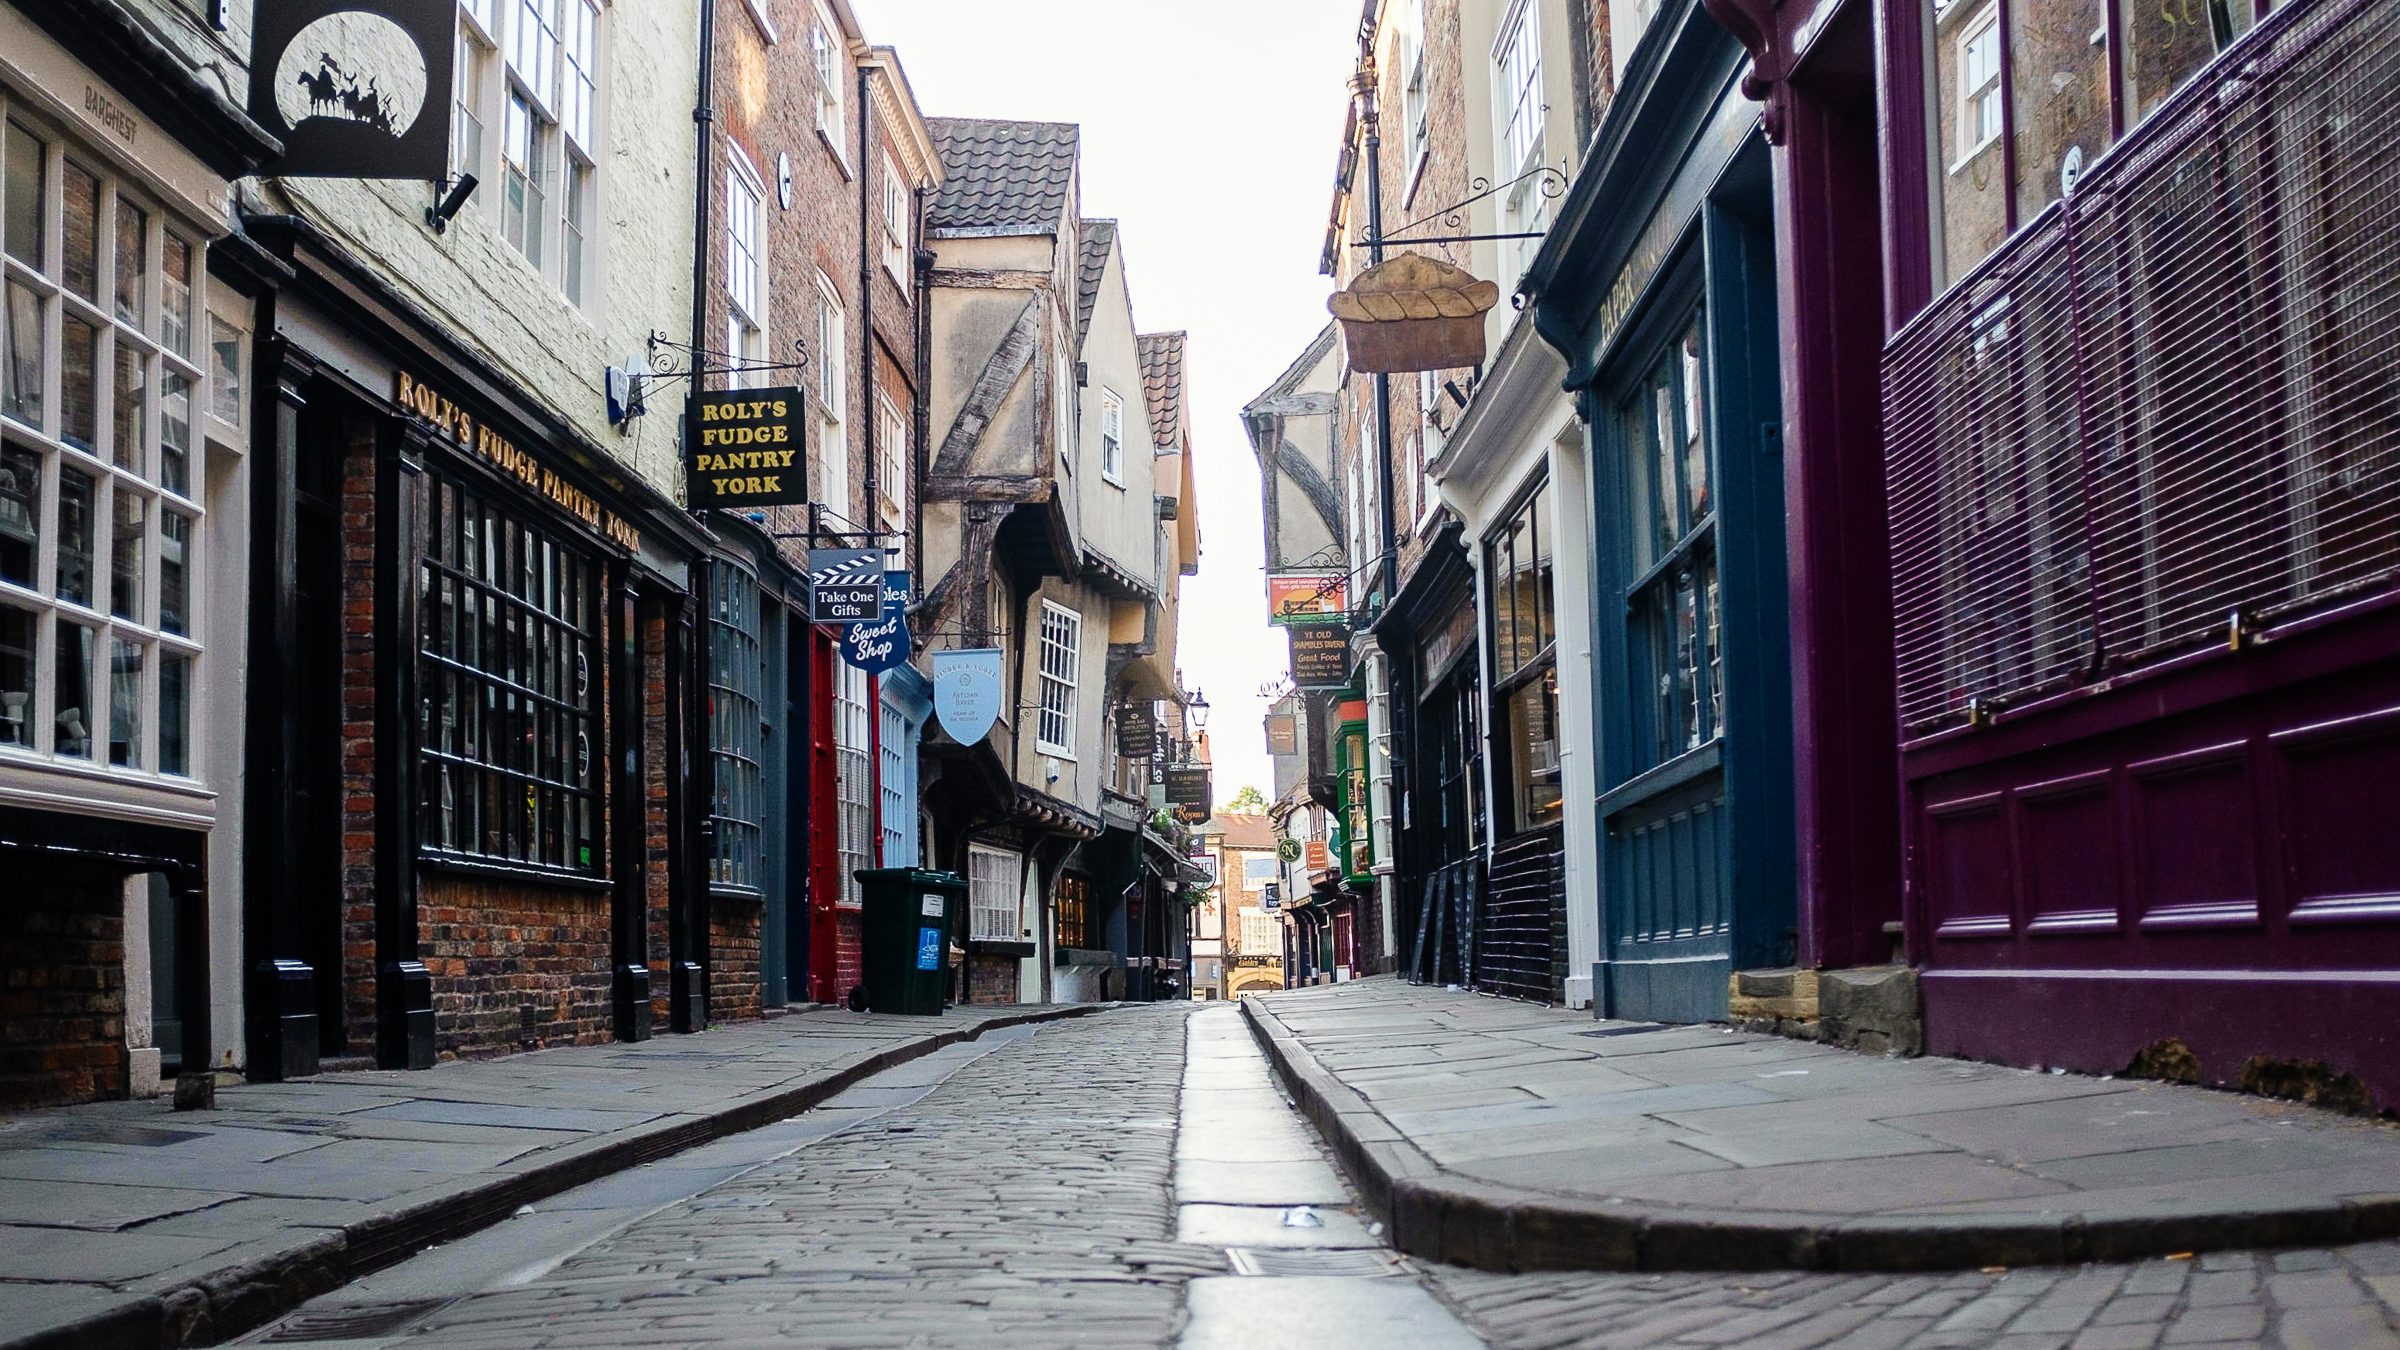 City of York © York Mediale